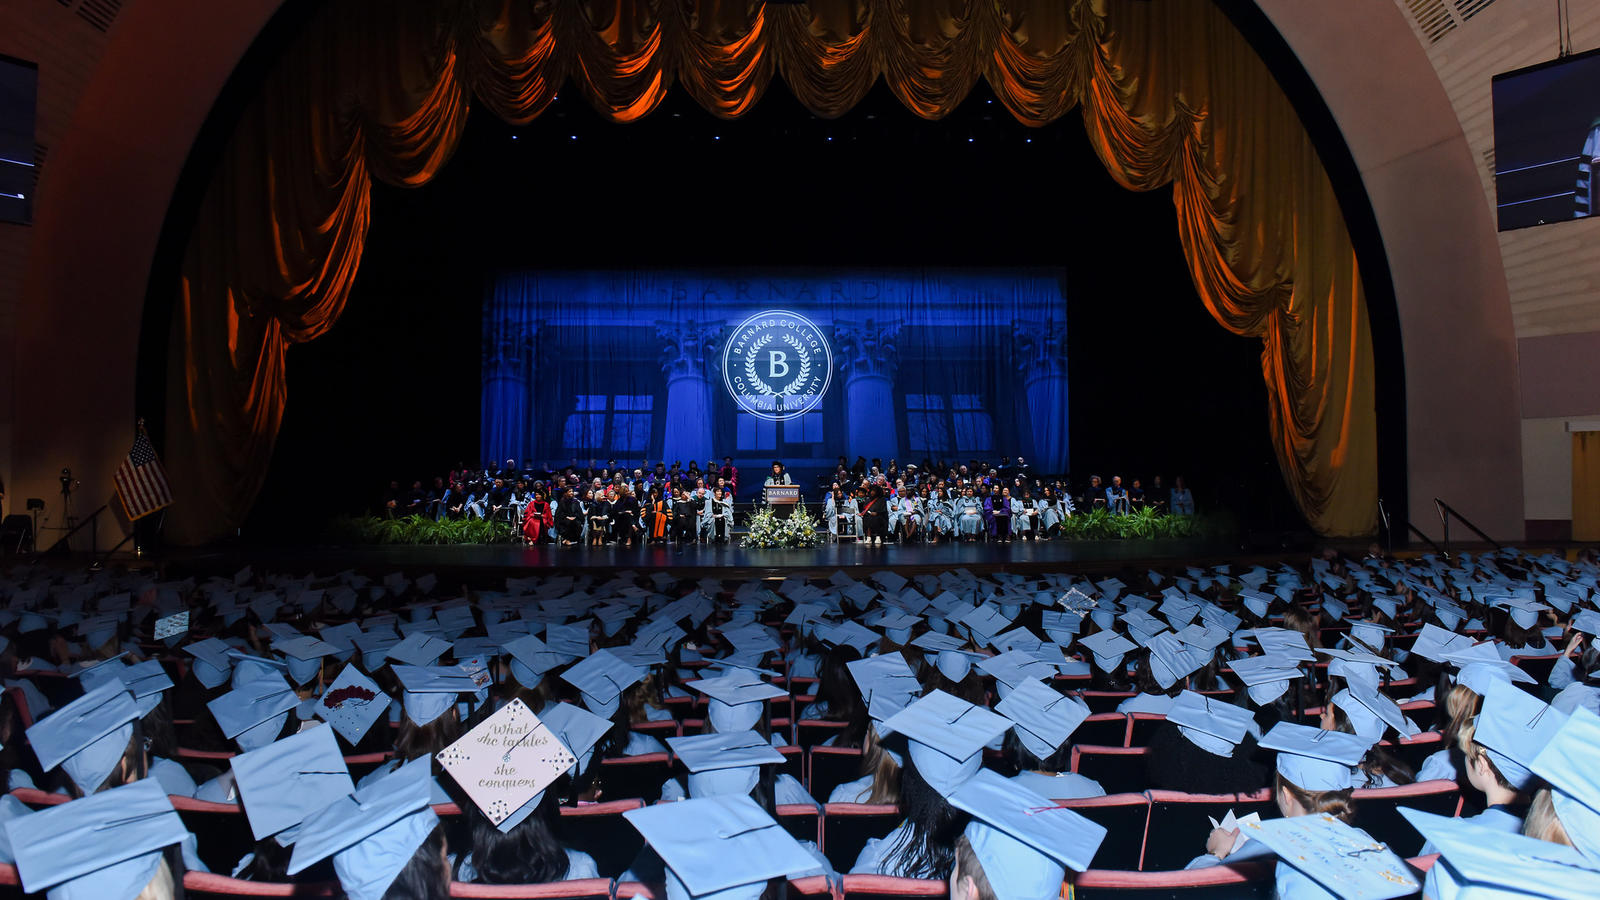 Commencement at radio city music hall